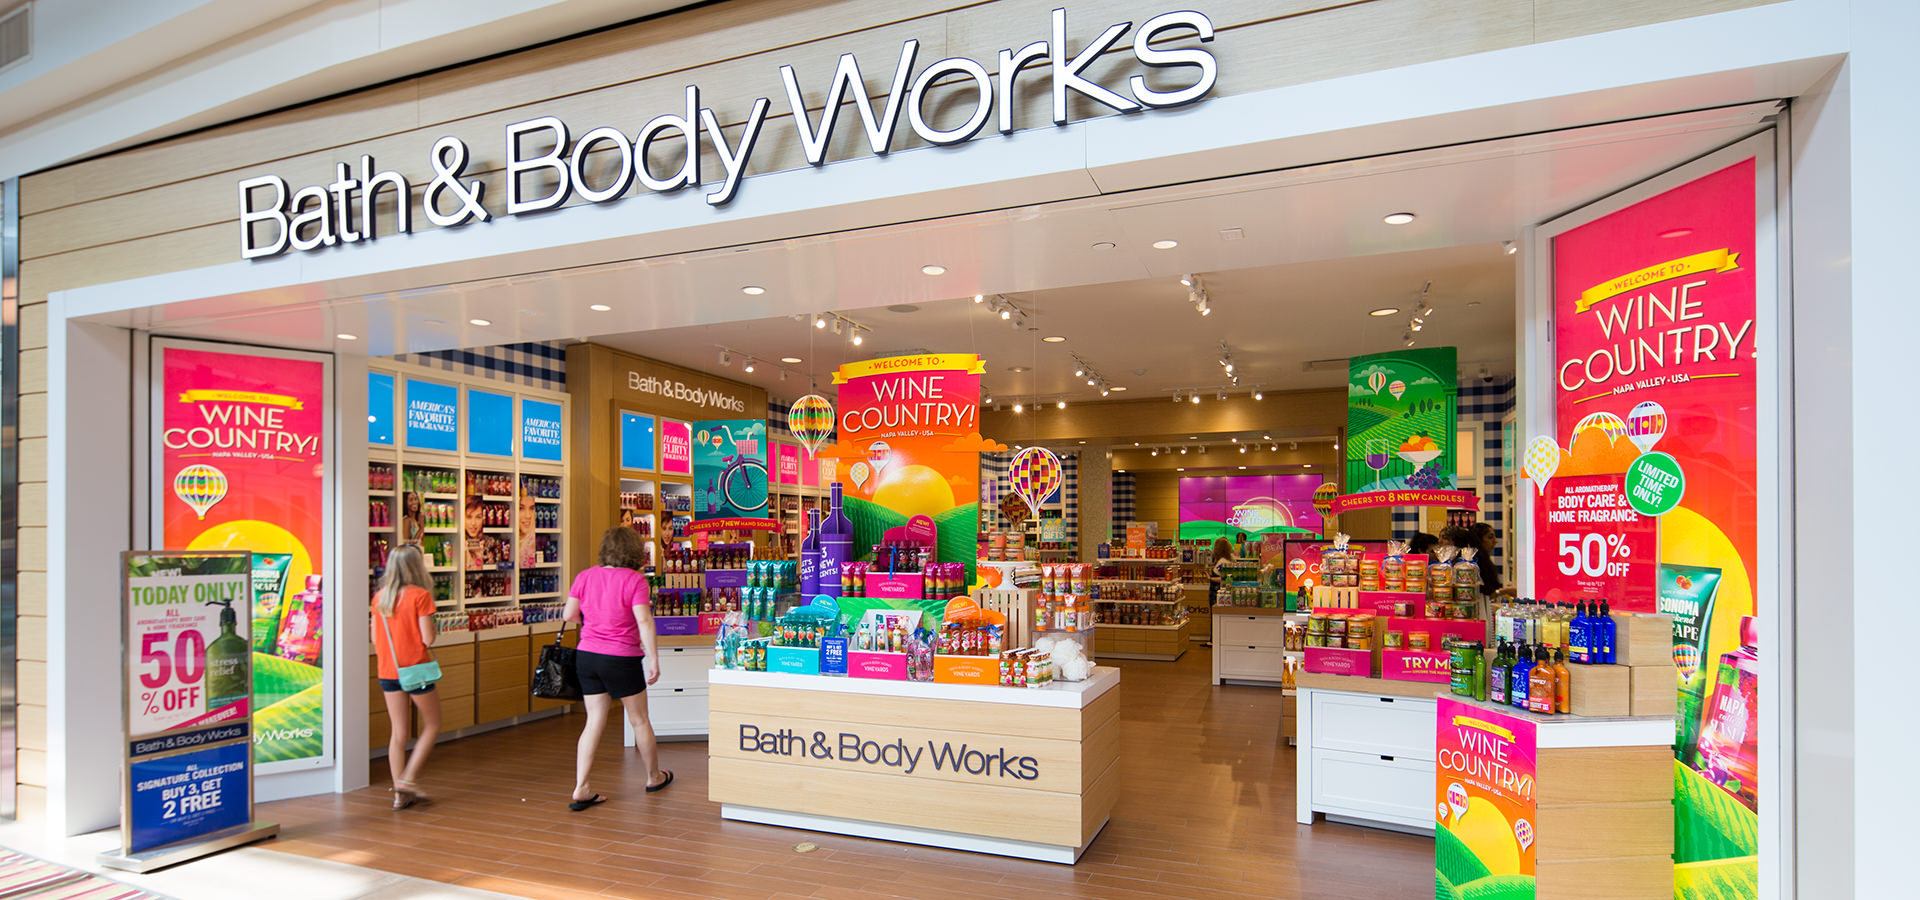 You probably know Bath & Body Works by its irresistible scents in a range of products – from holiday-themed mini-bottles of hand sanitizer for kids to aromatherapy lotions and bath products that promote sleep, reduce stress, and more. The company has made personal care into a luxury that's also fun to use.